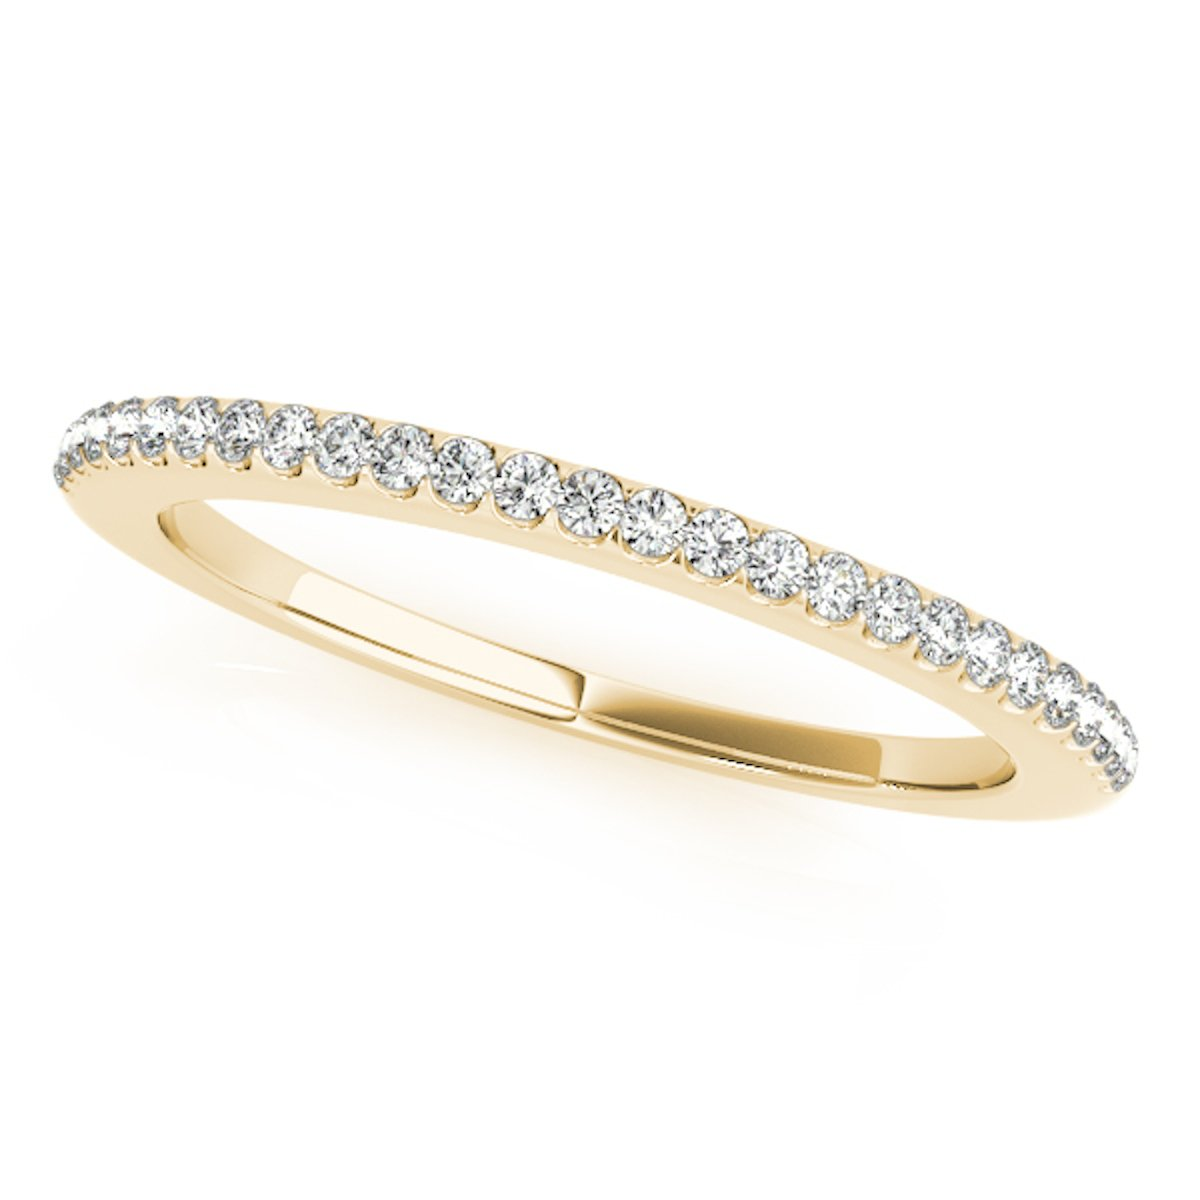 MauliJewels 0.14 Carat Diamond Wedding Band in 14K Solid Yellow Gold Ring Size - 7 by MauliJewels